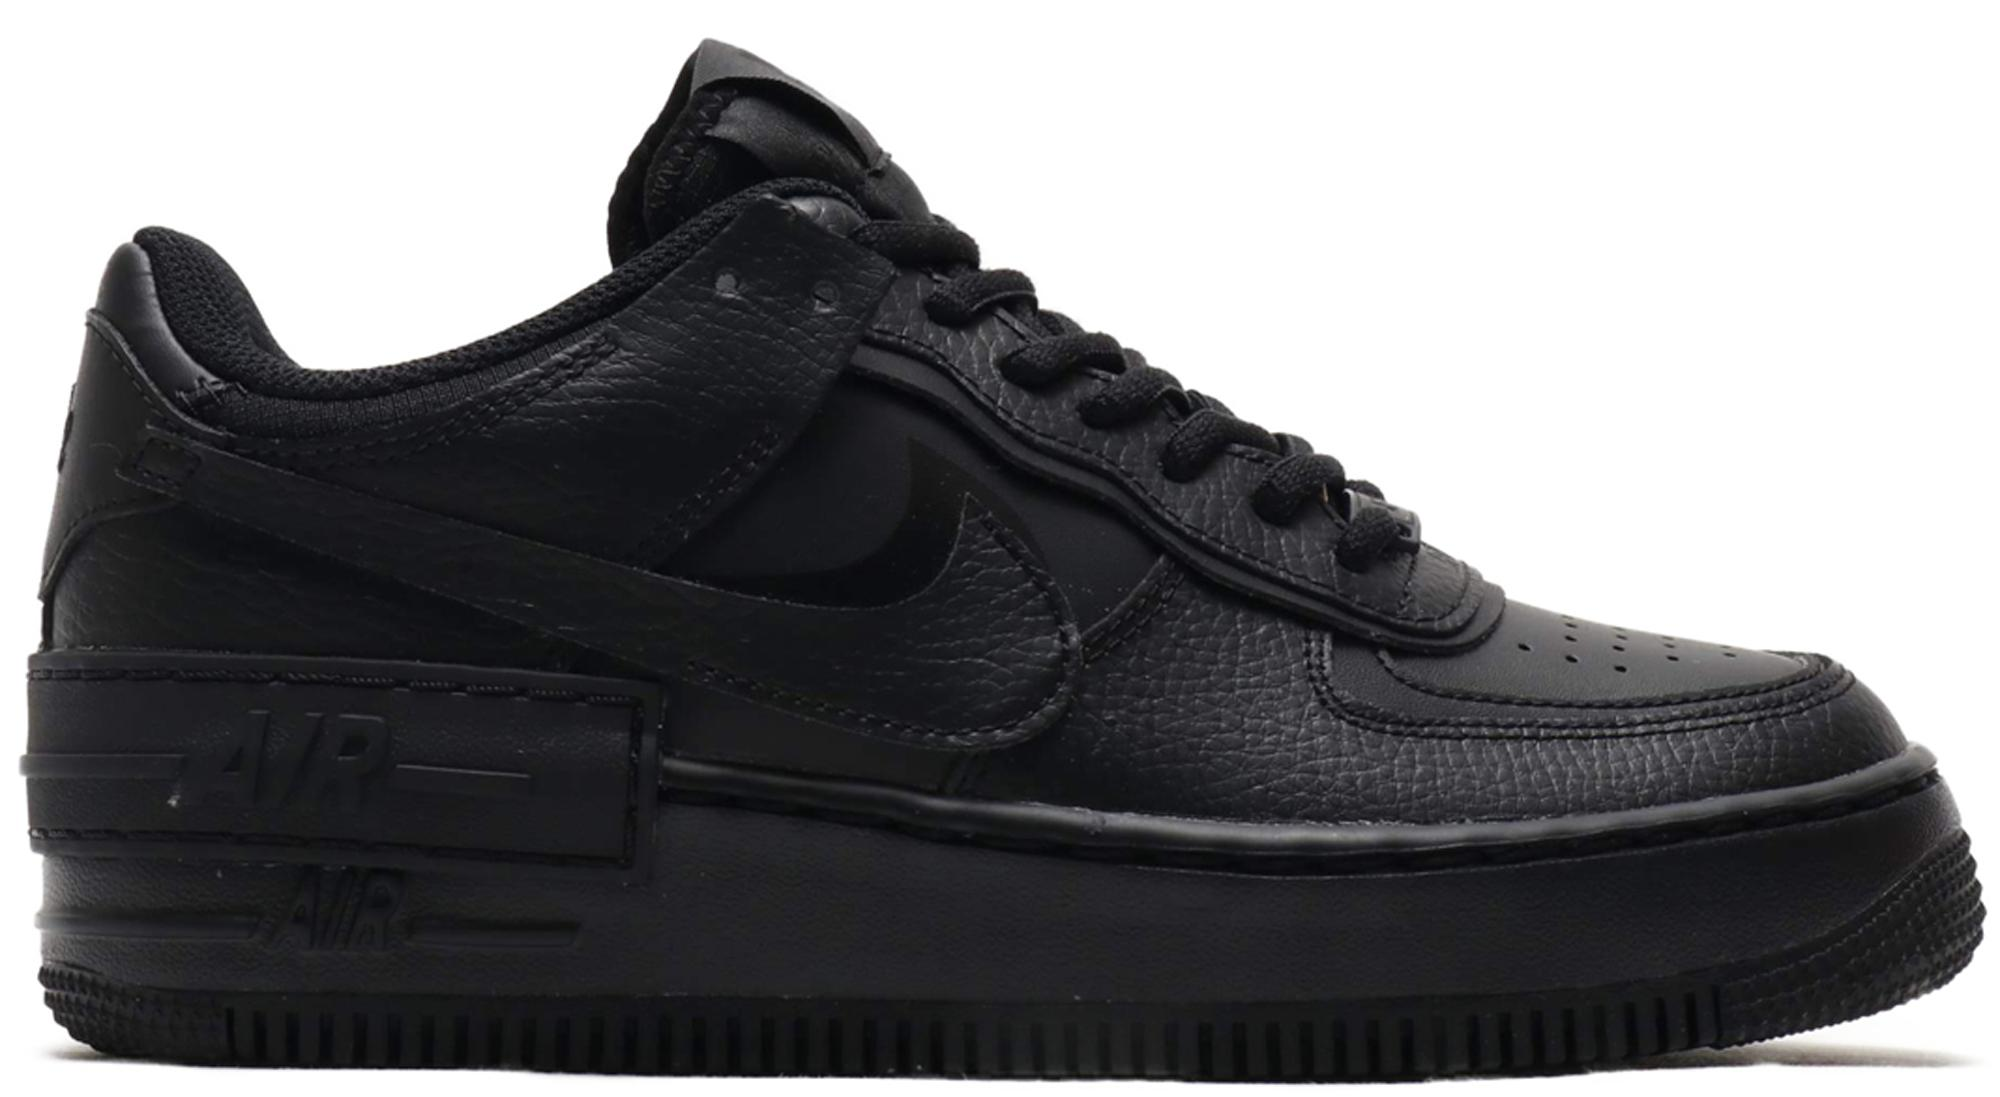 Nike Leather Air Force 1 Low Sneaker in